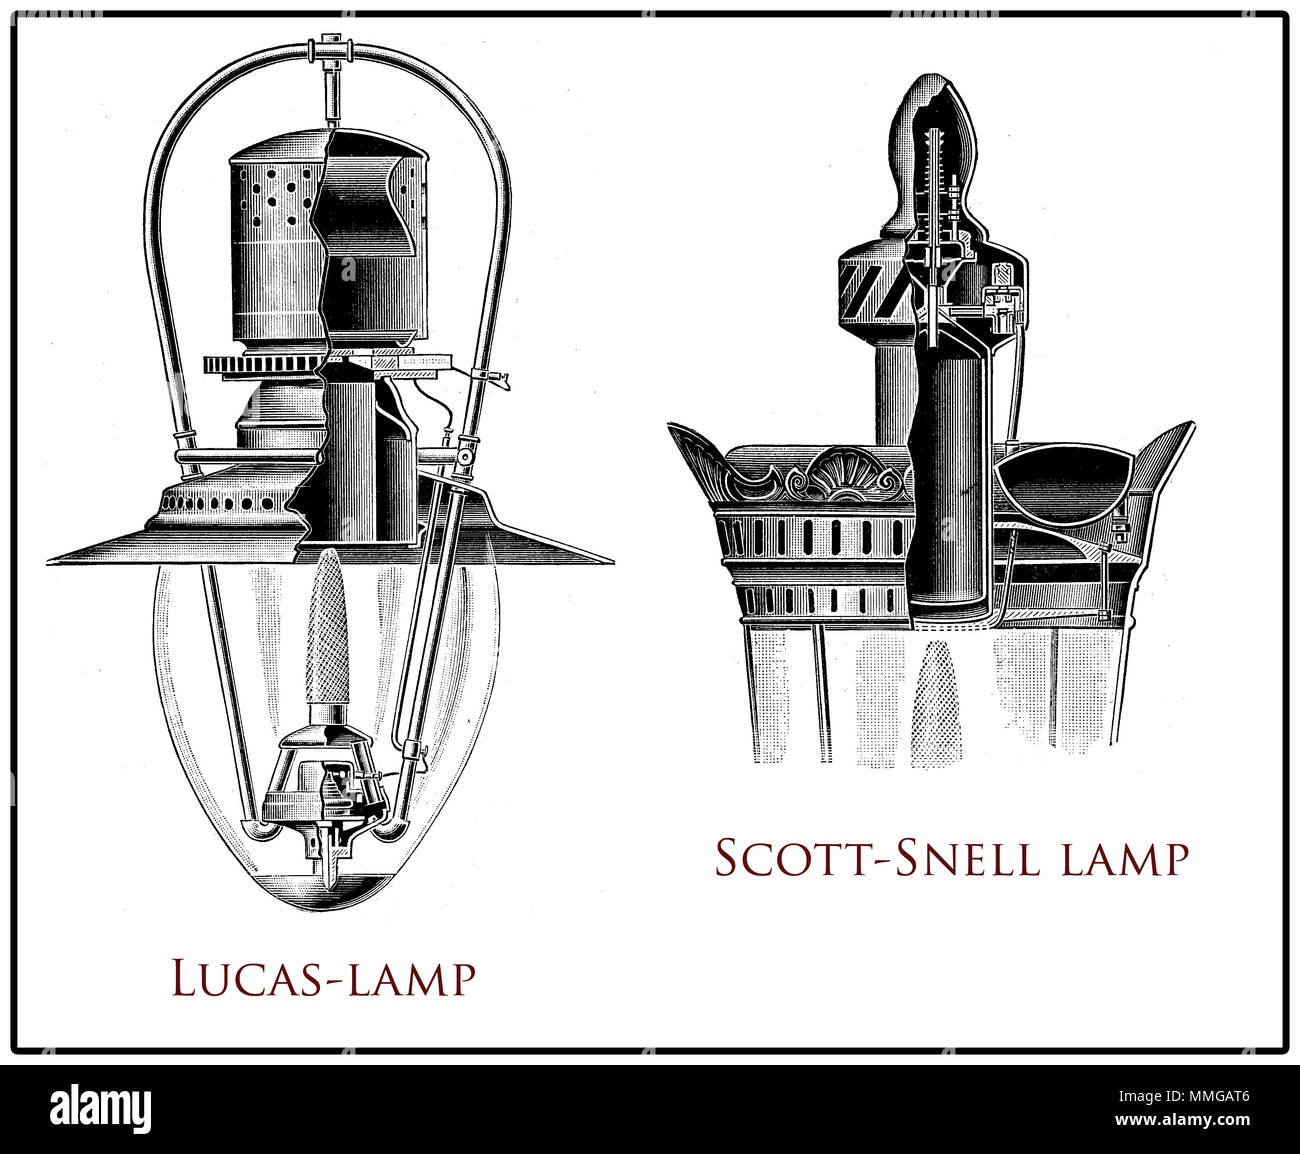 Vintage arc lamps: Lucas-lamp and Scott-Snell lamp, XIX century engraving - Stock Image